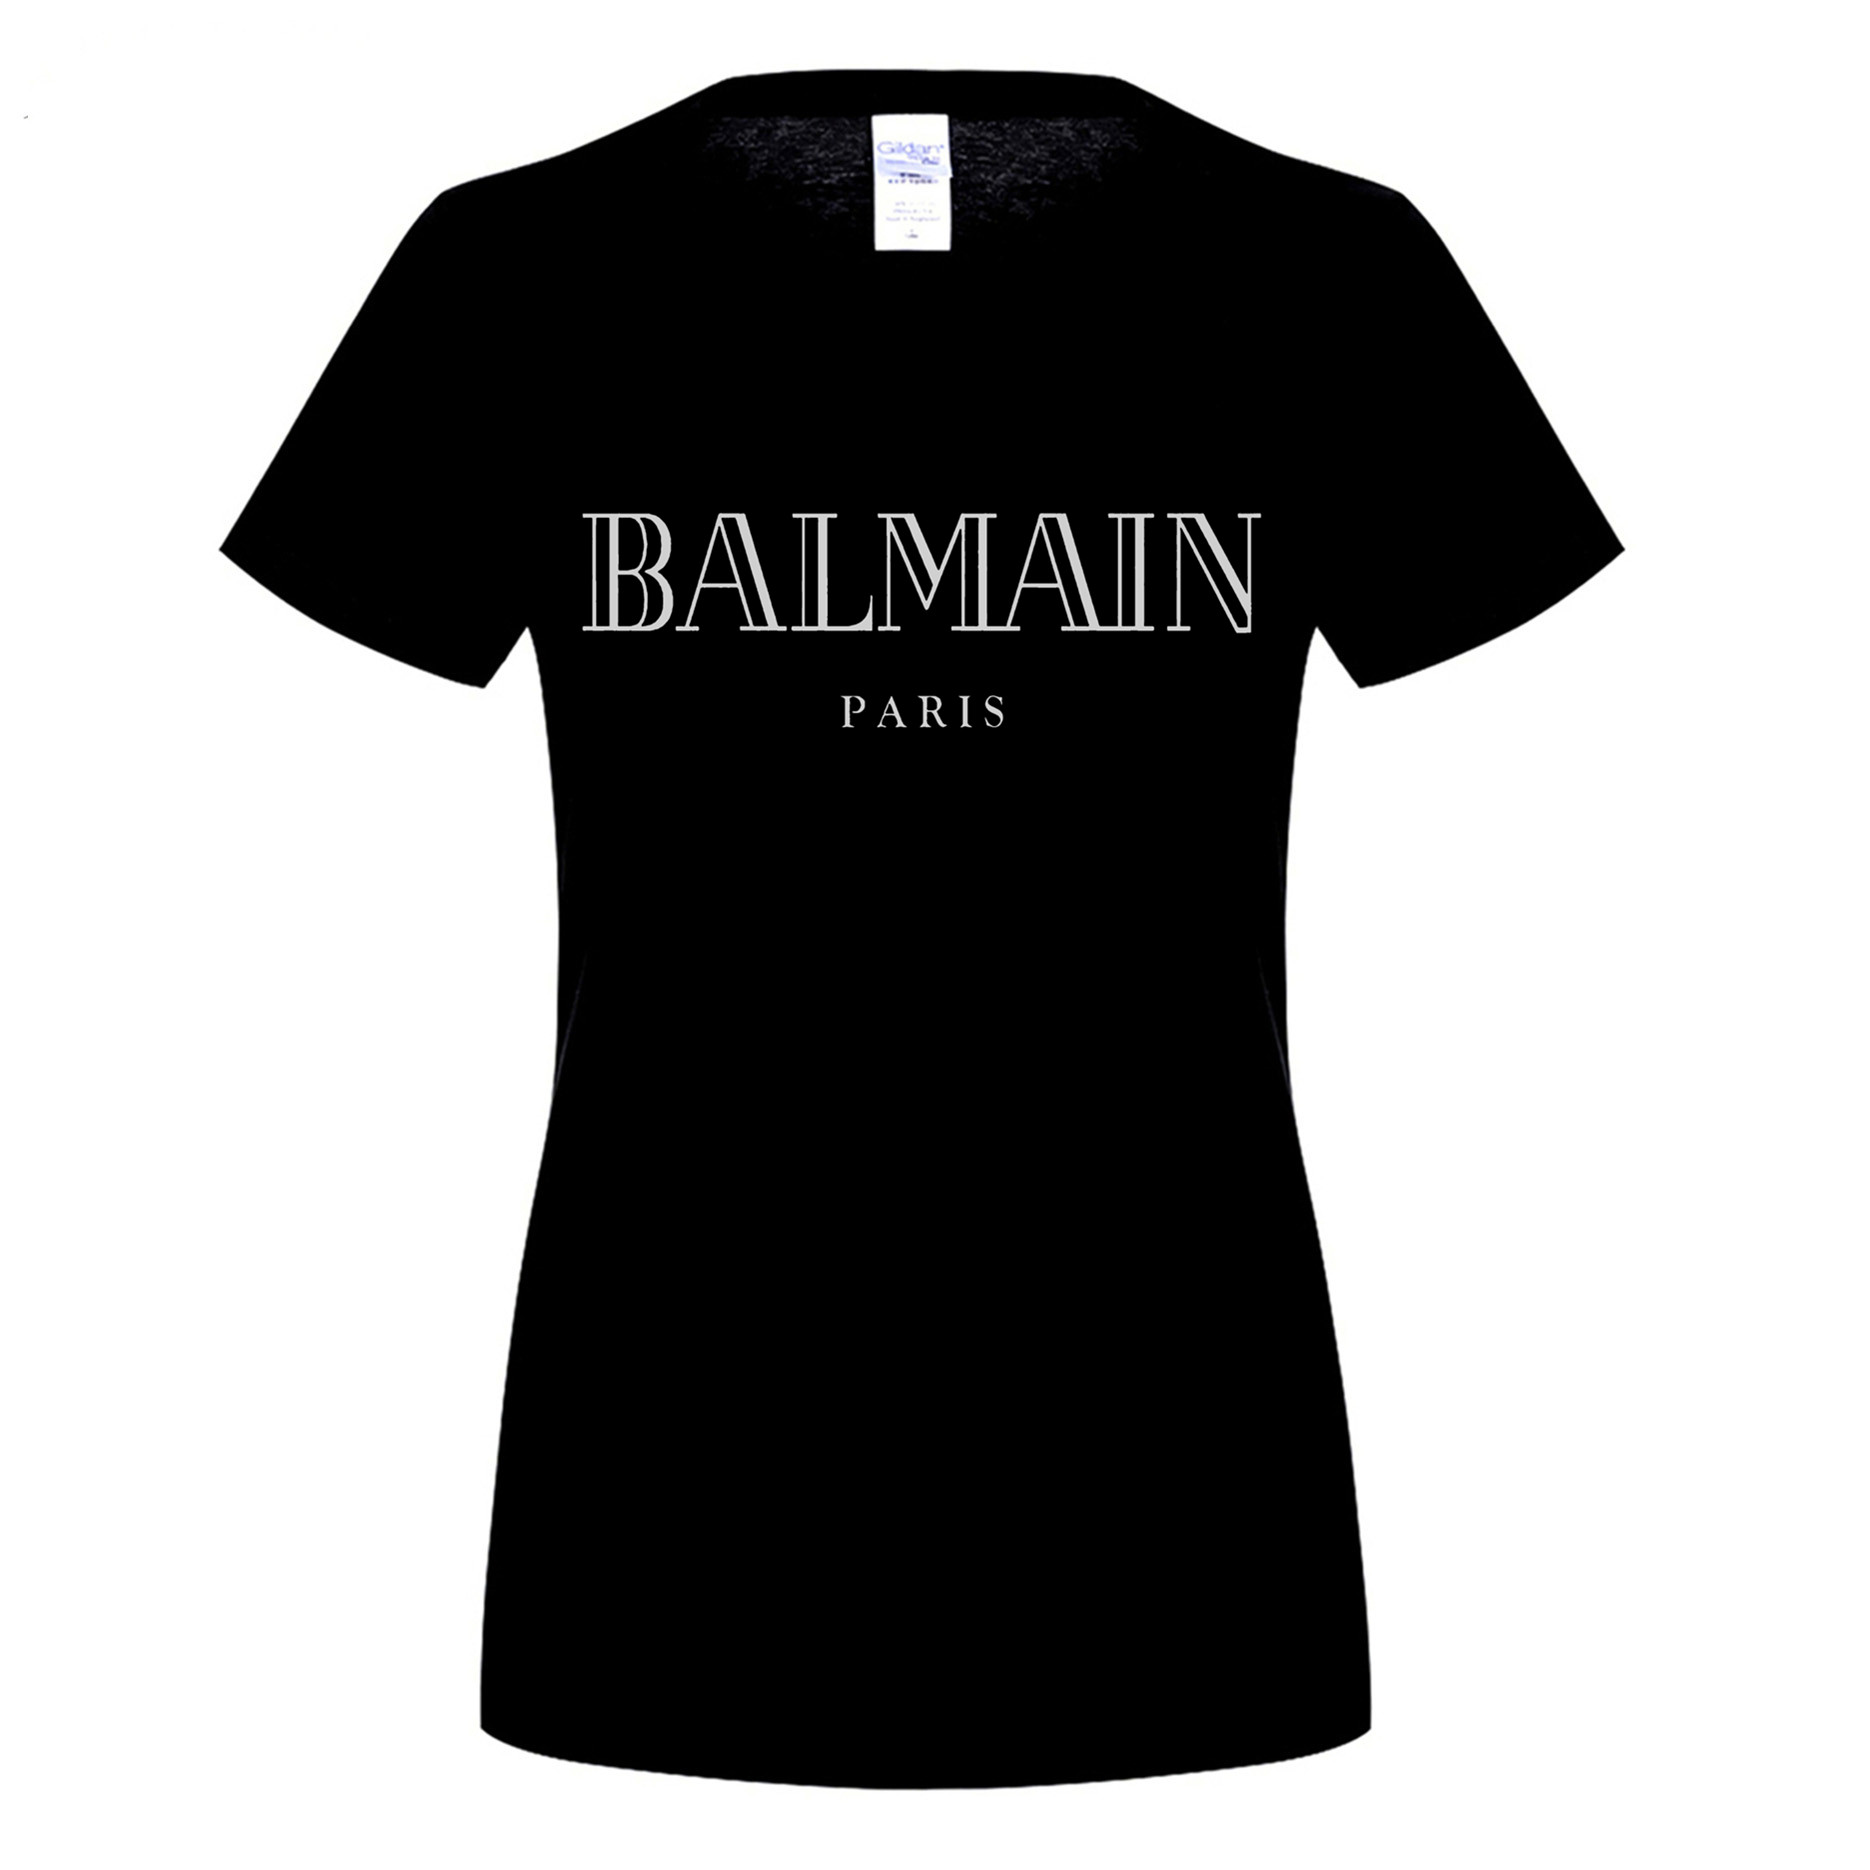 Balmain Paris shirt-in T-Shirts from Men's Clothing on Aliexpress.com |  Alibaba Group